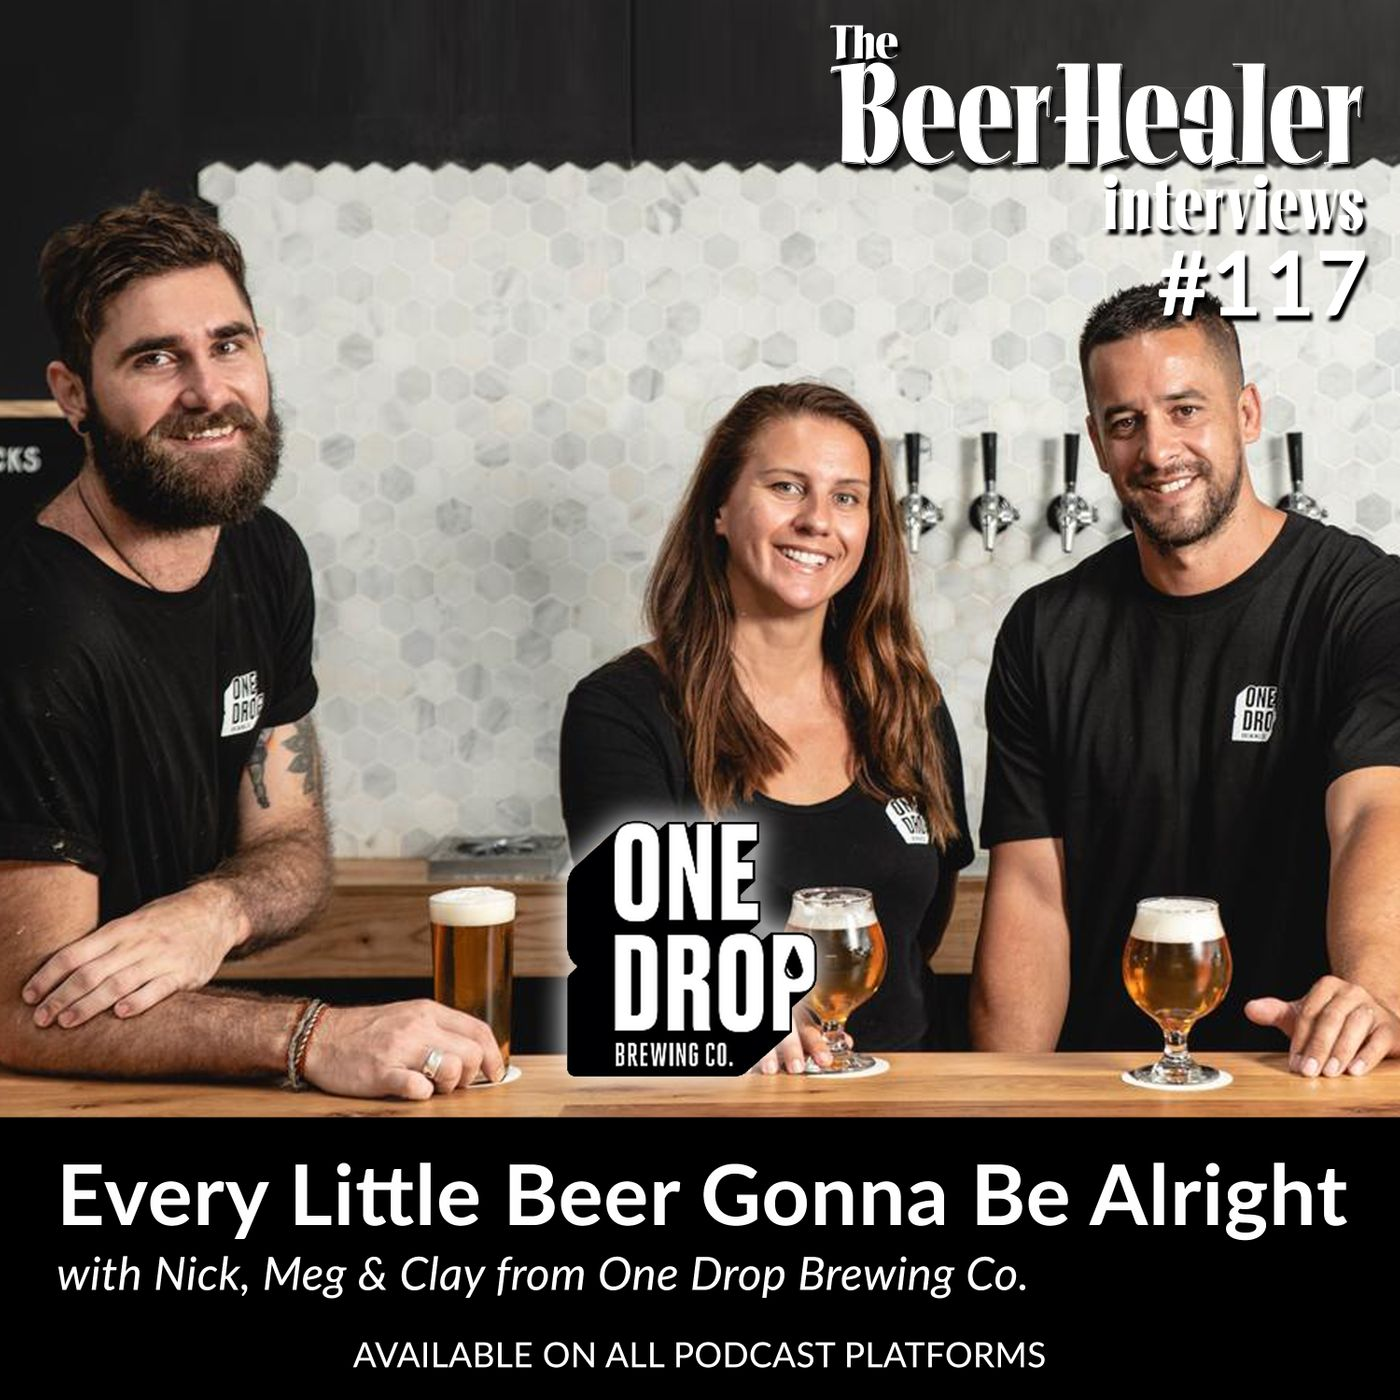 Ep. 117 - Every Little Beer Gonna Be Alright. With Nick, Meg & Clay from One Drop Brewing Co.